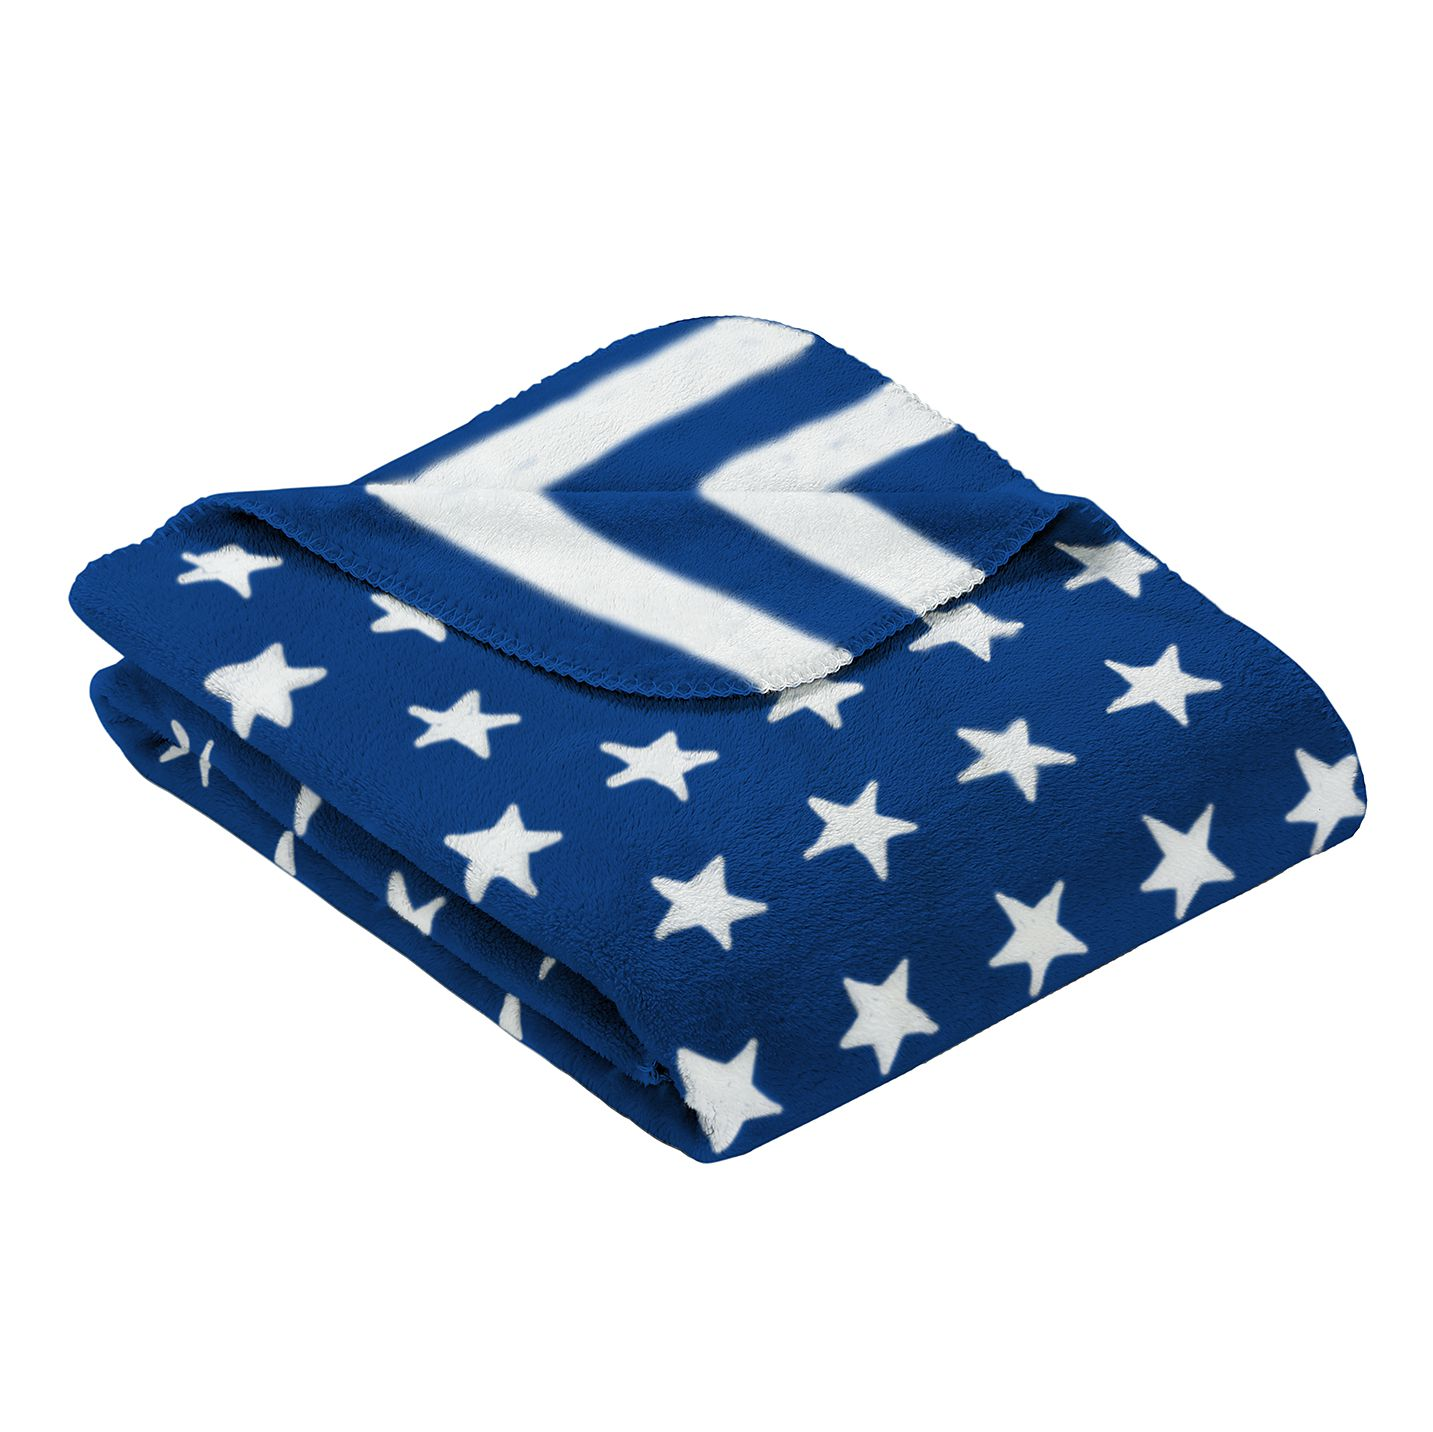 Wohndecke Stars & Stripes - Blau, Goldmond